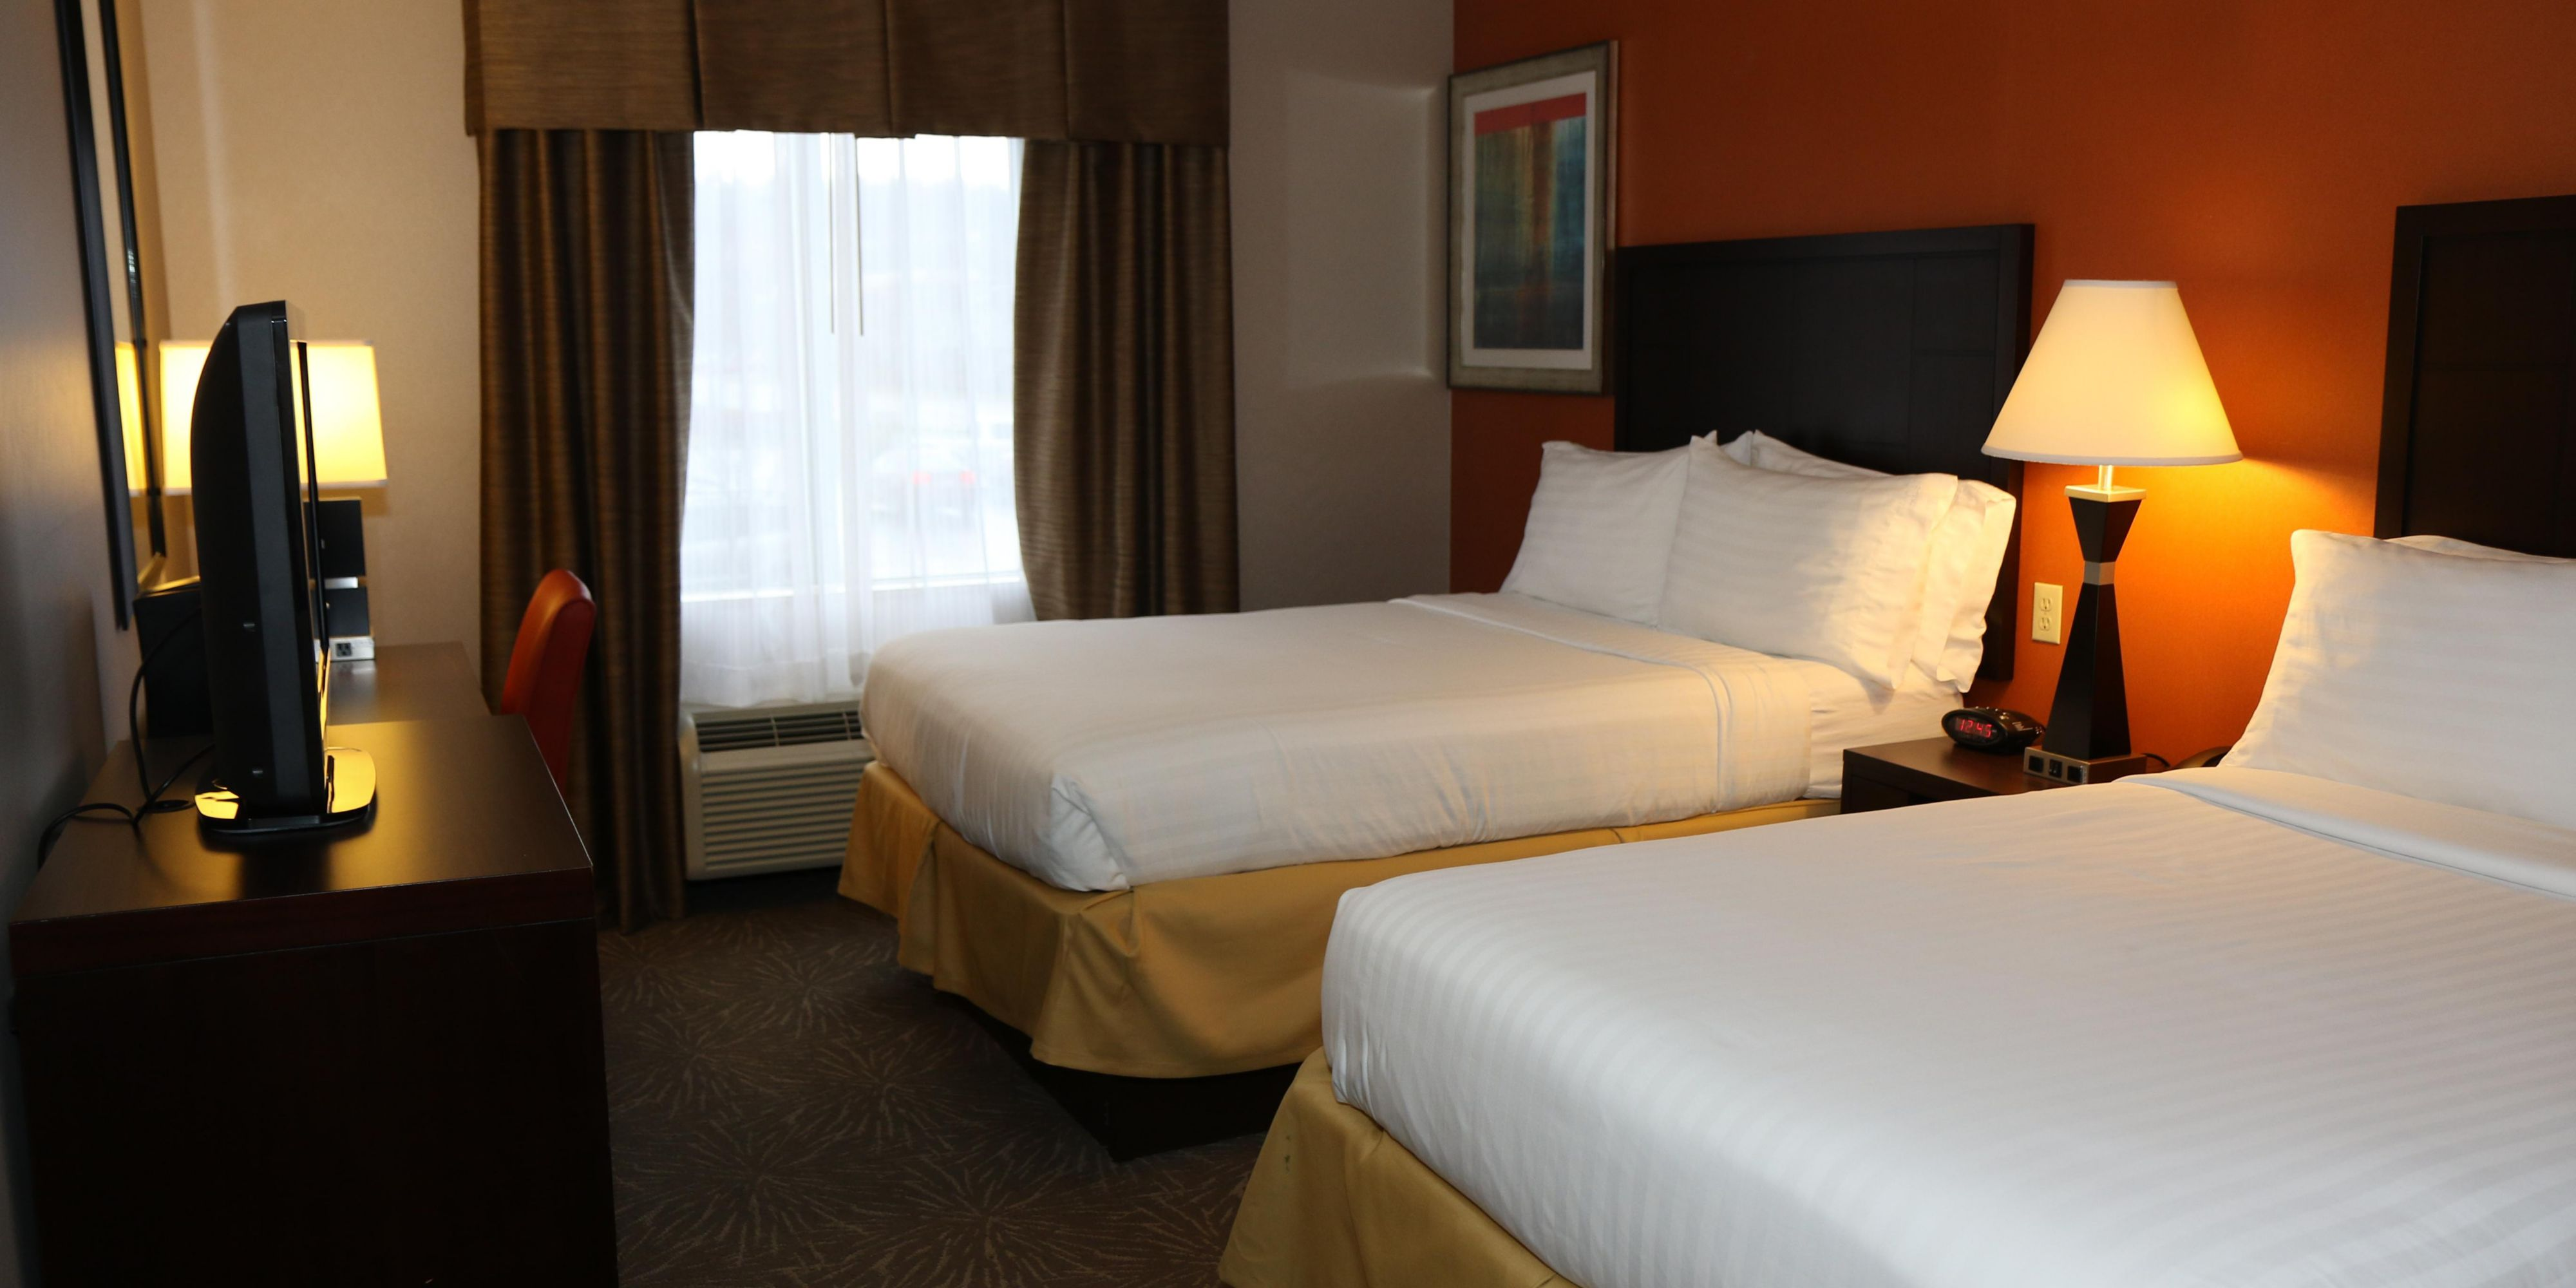 Holiday Inn Express Munhall 4883330051 2x1